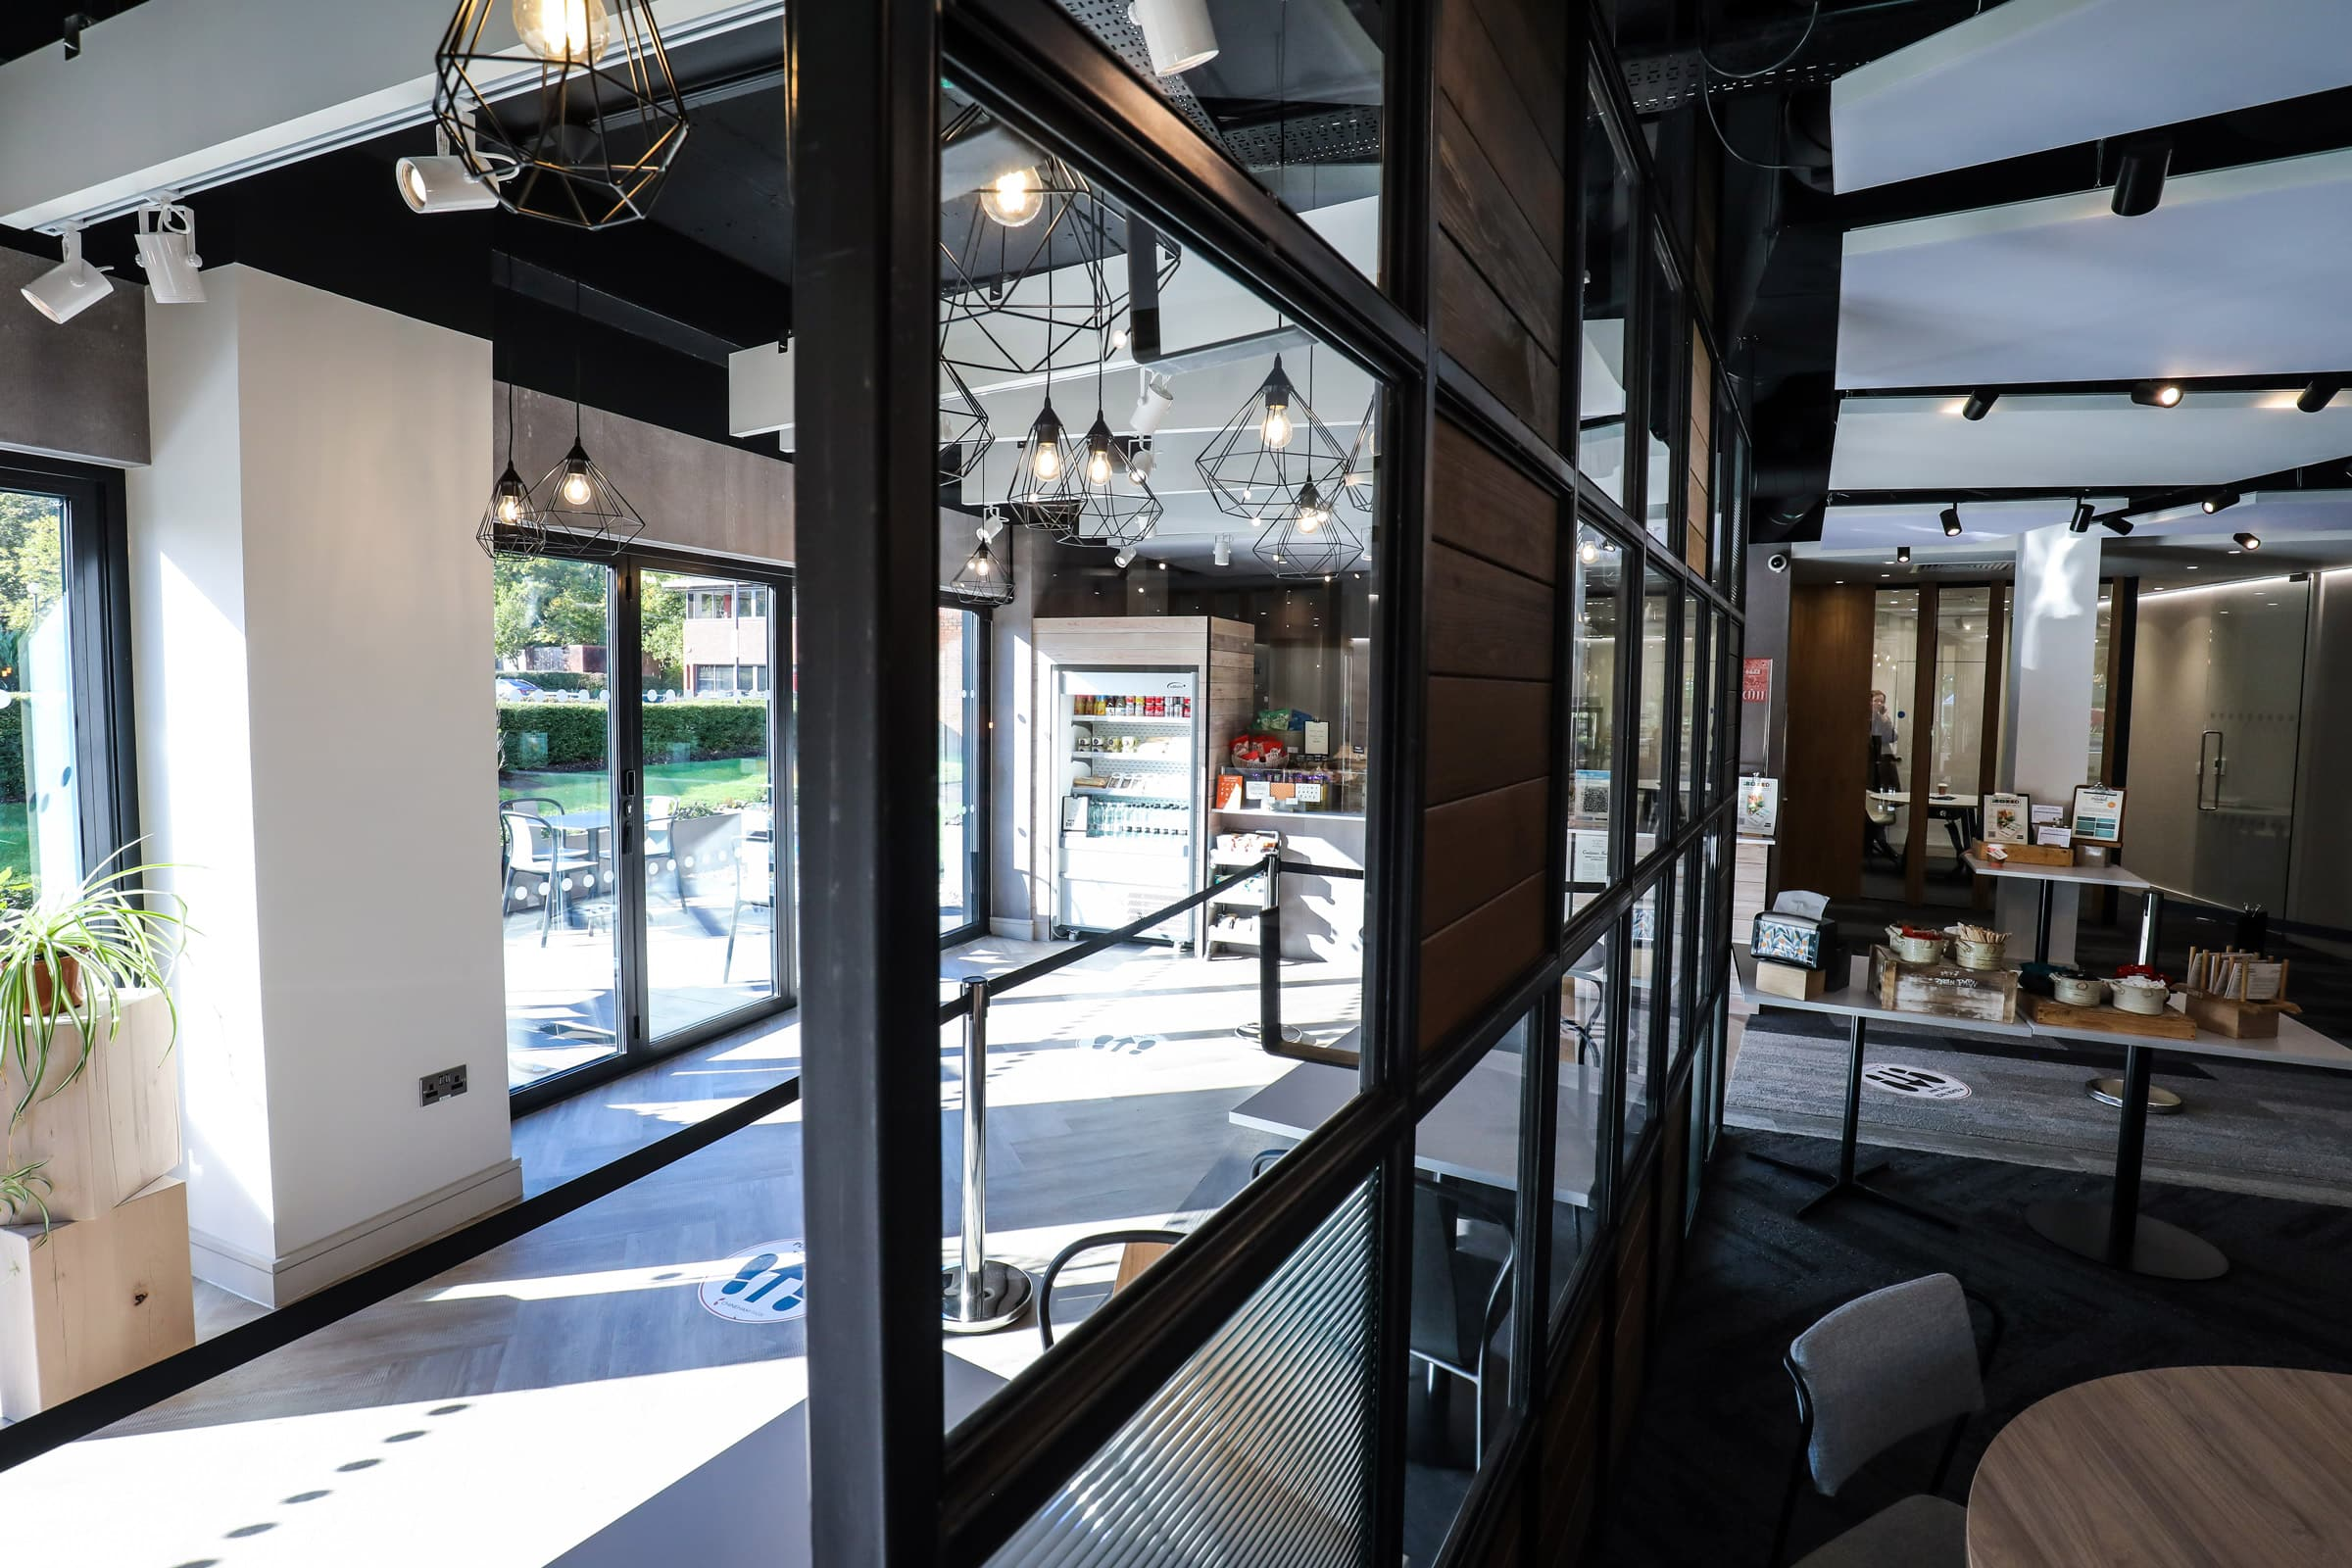 The Exchange is a flexible working space